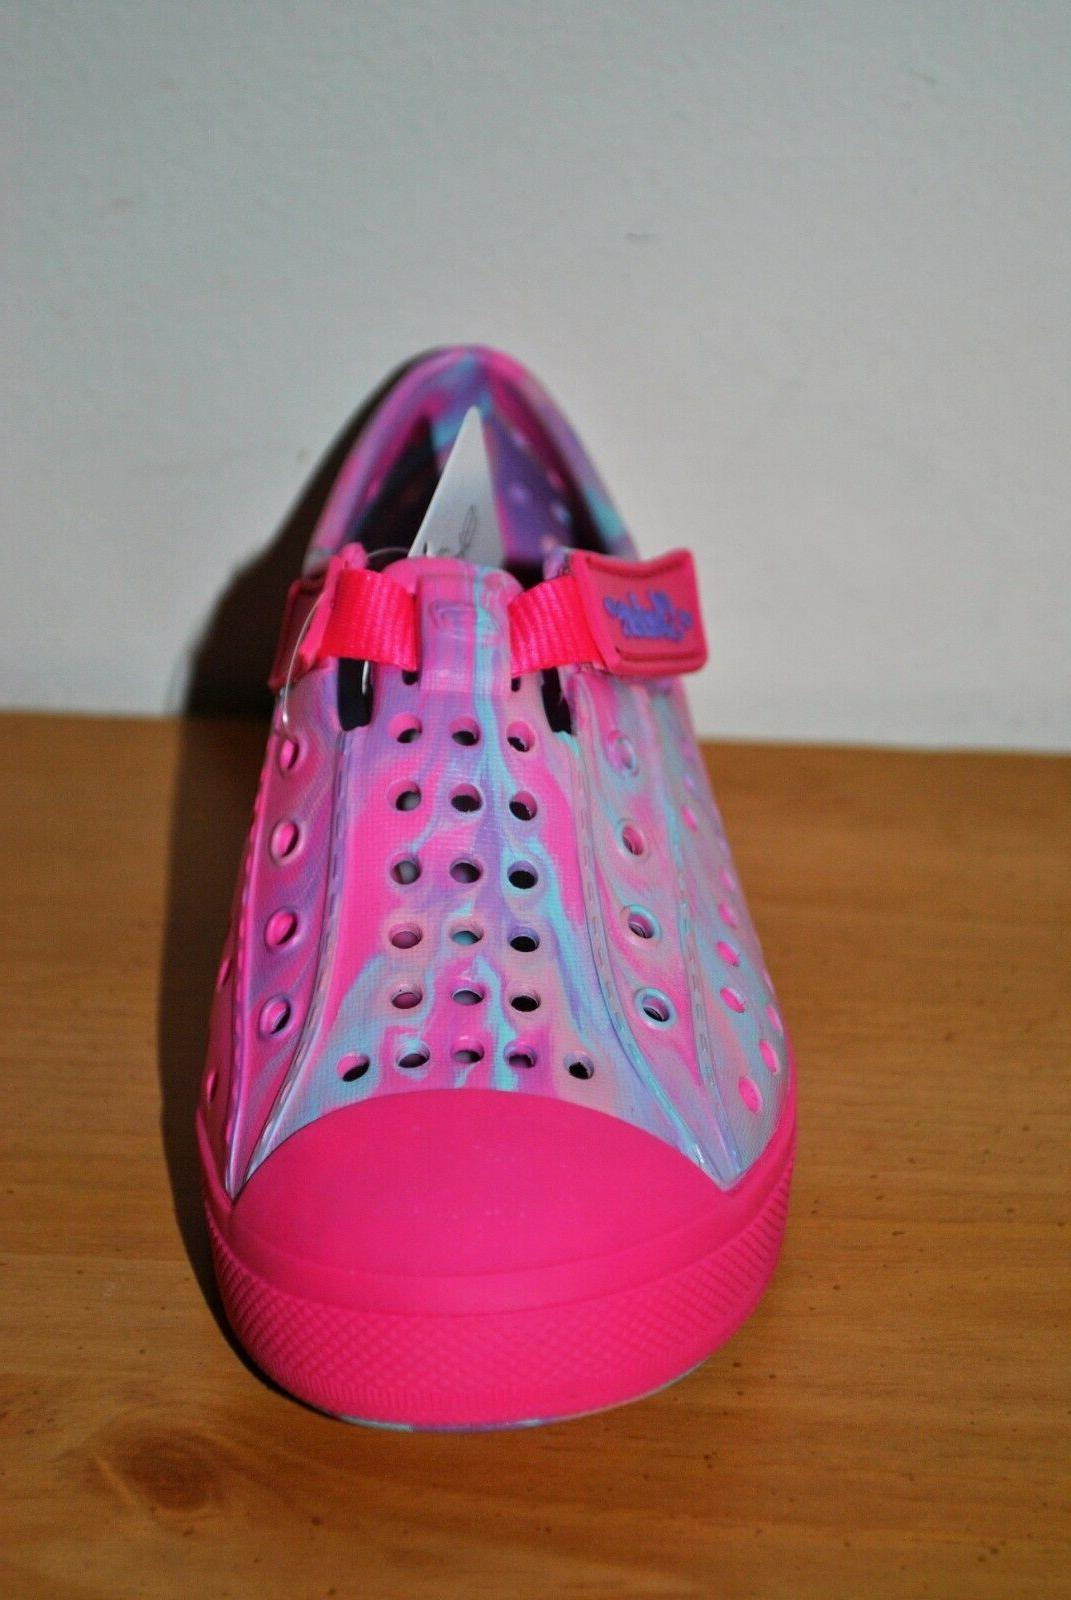 Swirly Brights Pink Shoes - Size 9, 10